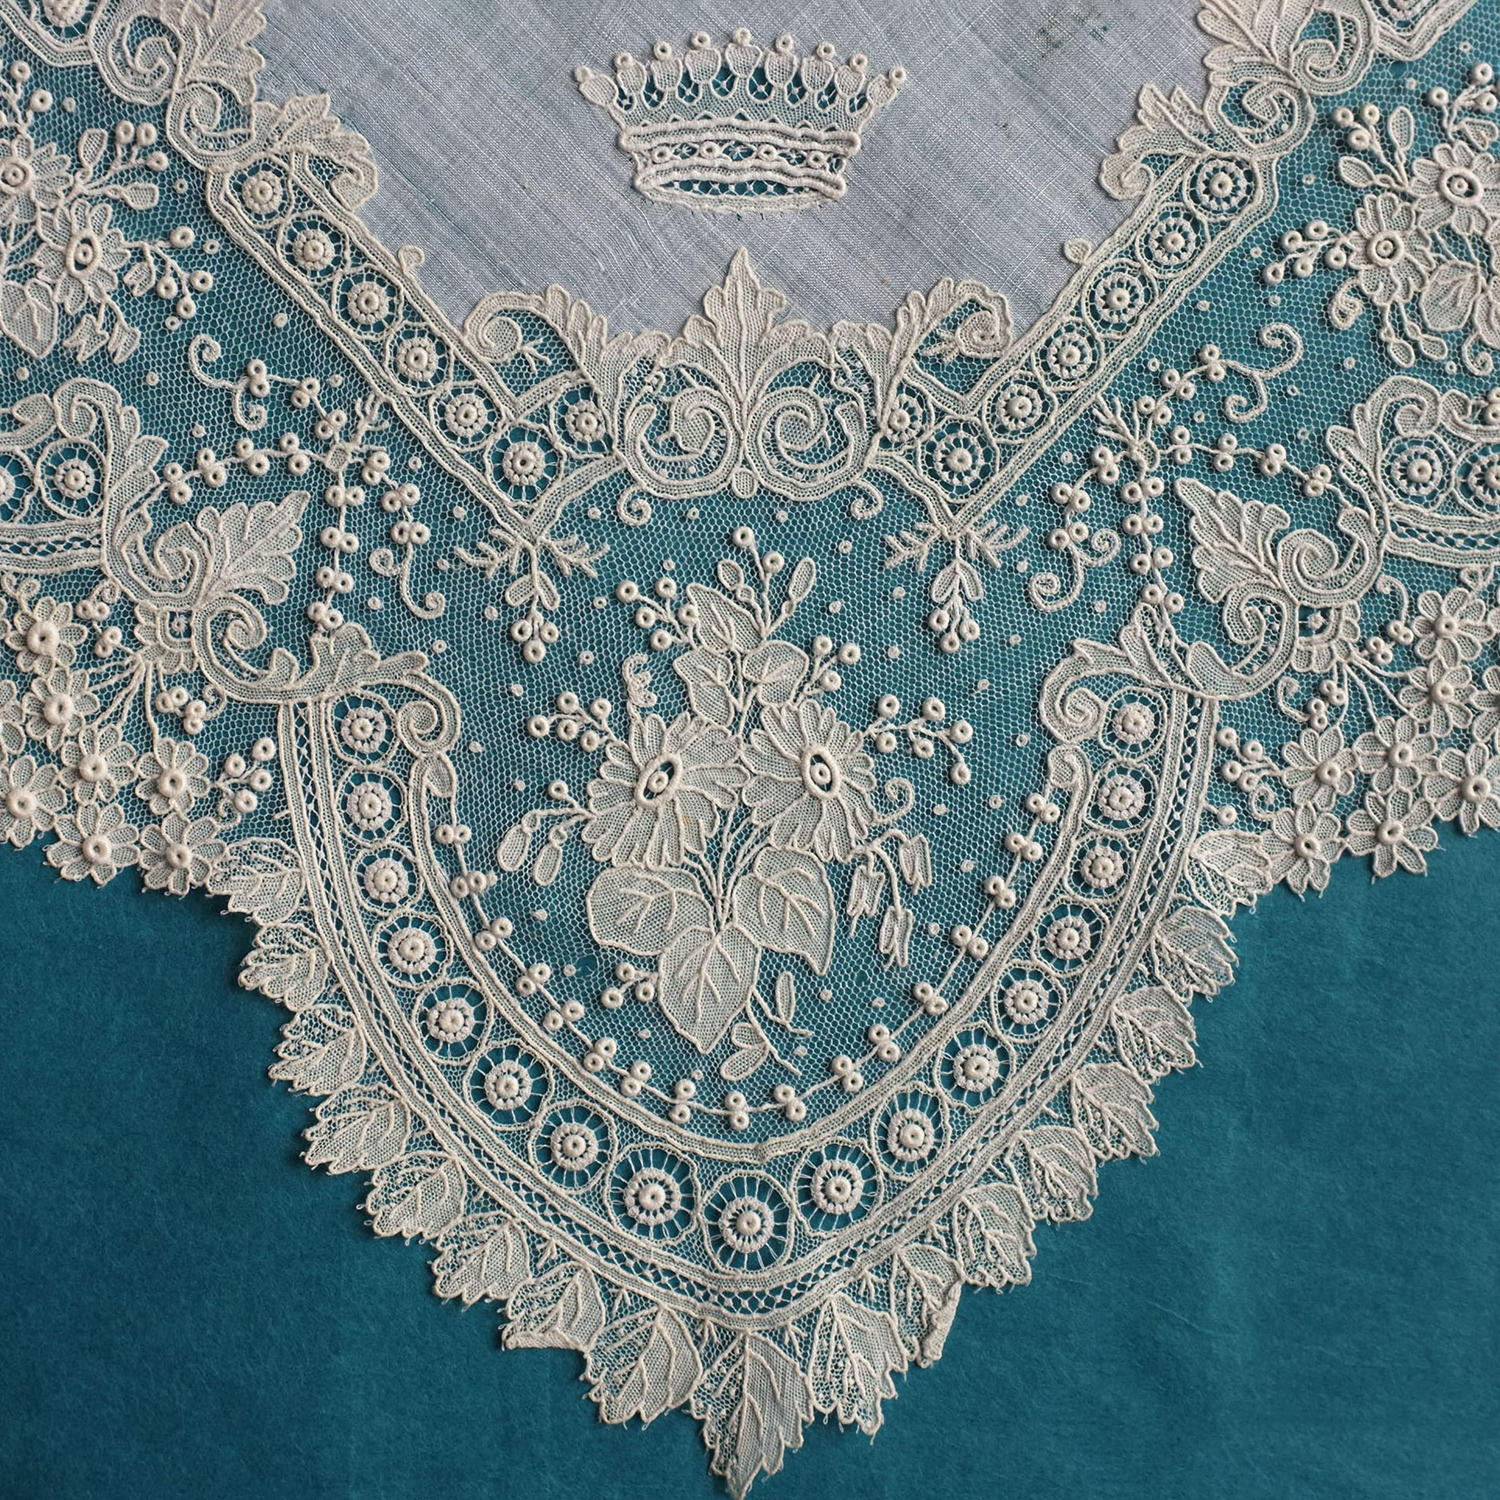 Brussels Point de Gaze Lace Handkerchief with Coronet